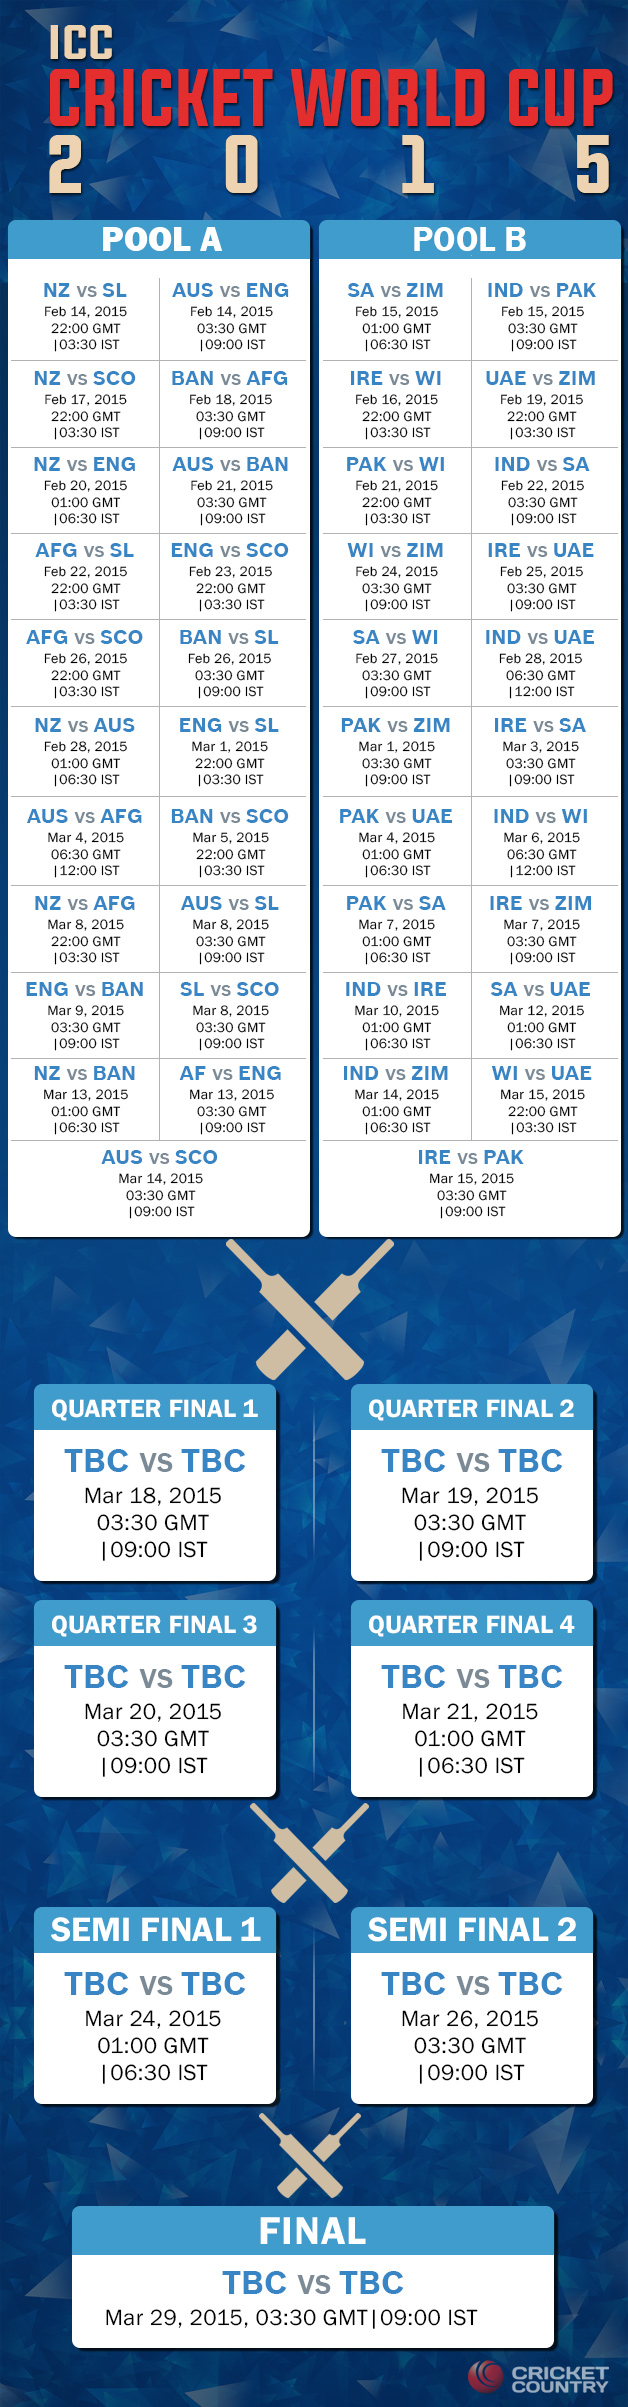 Icc World Cup 2015 Schedule Match Time Table With Group